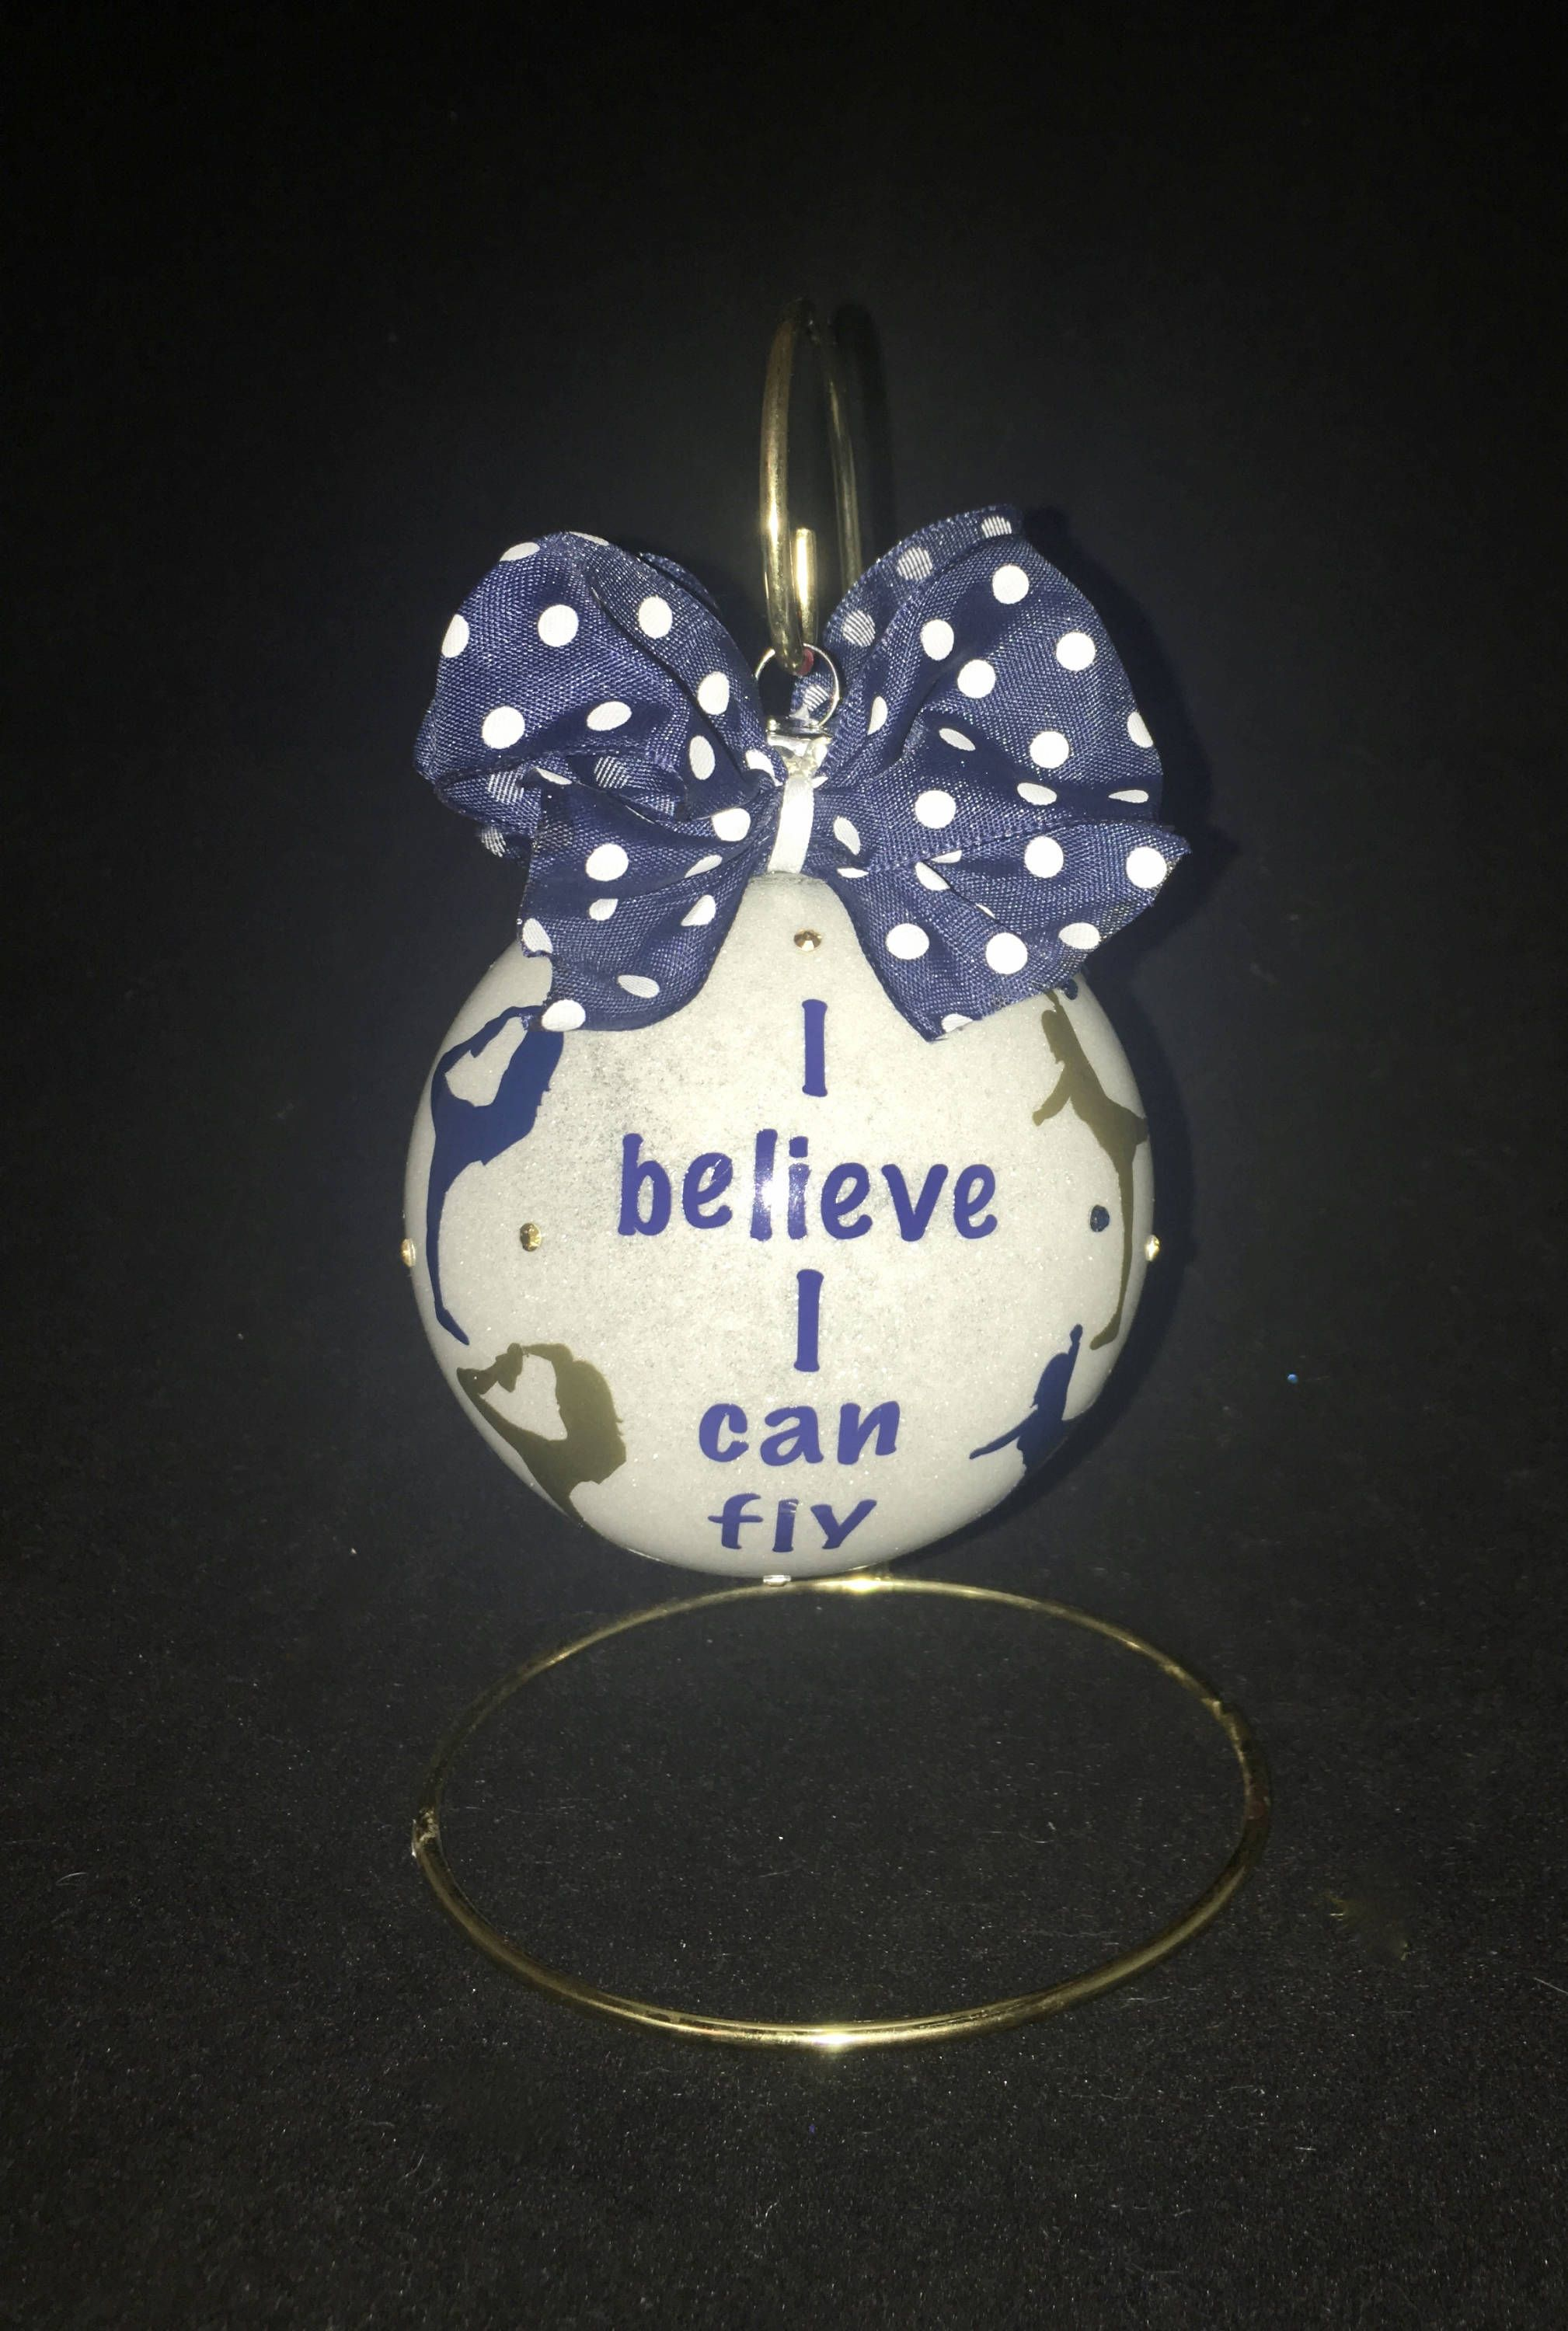 cheer flyers ornament i believe i can fly ornament for cheerleaders